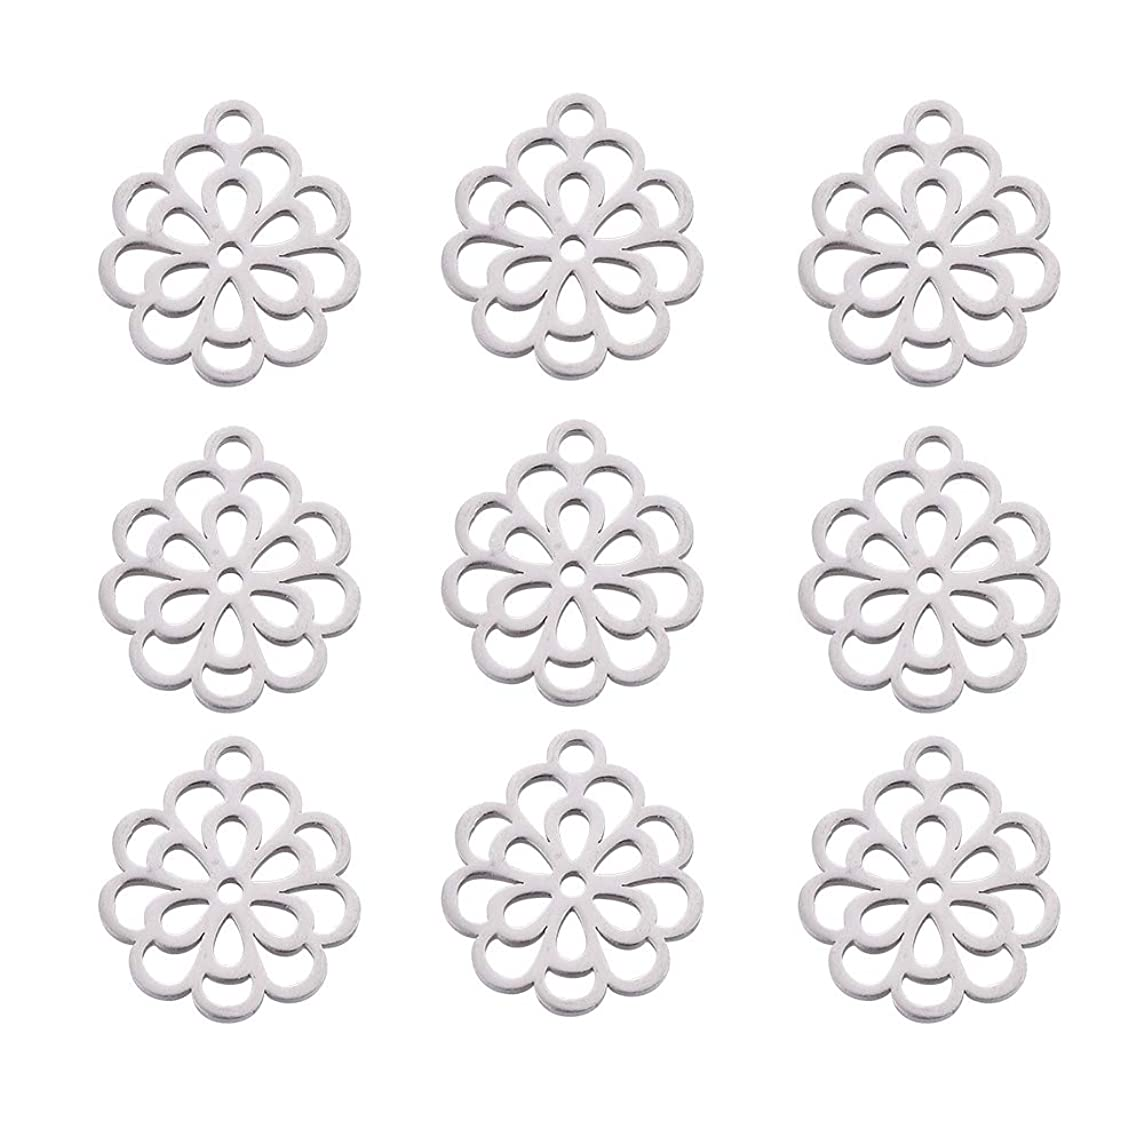 DanLingJewelry 304 Stainless Steel Handmade Charms Flower Leaves Charm Pendants for DIY Crafting Jewelry Findings Jewelry Making Accessory(Stainless Steel Color-10pcs,14.5 x 13 x 1mm, Hole: 1.5mm)